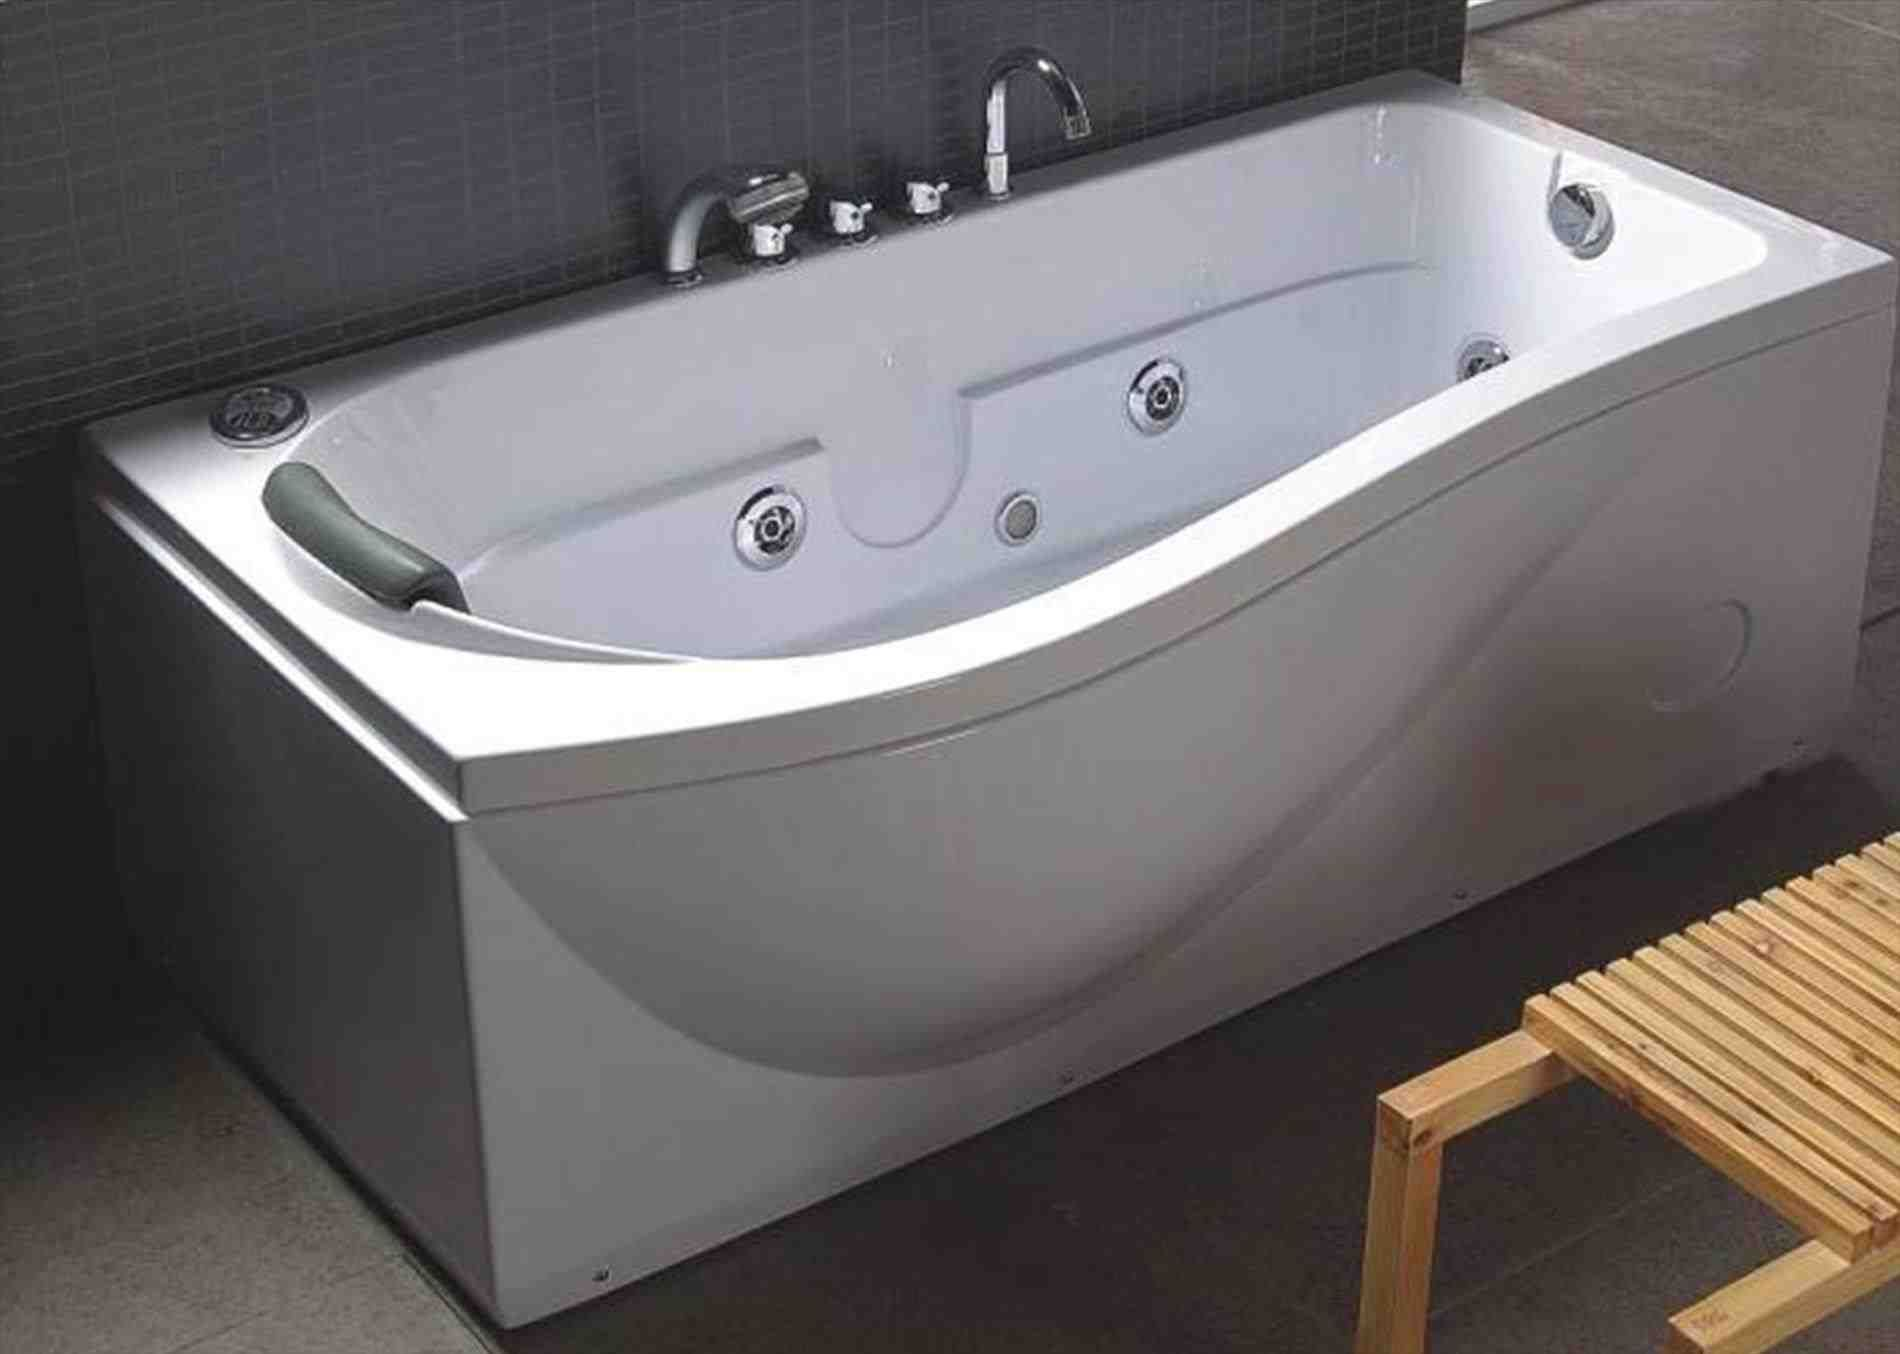 This jetted bathtub home depot - bathtubs idea, home depot jacuzzi ...